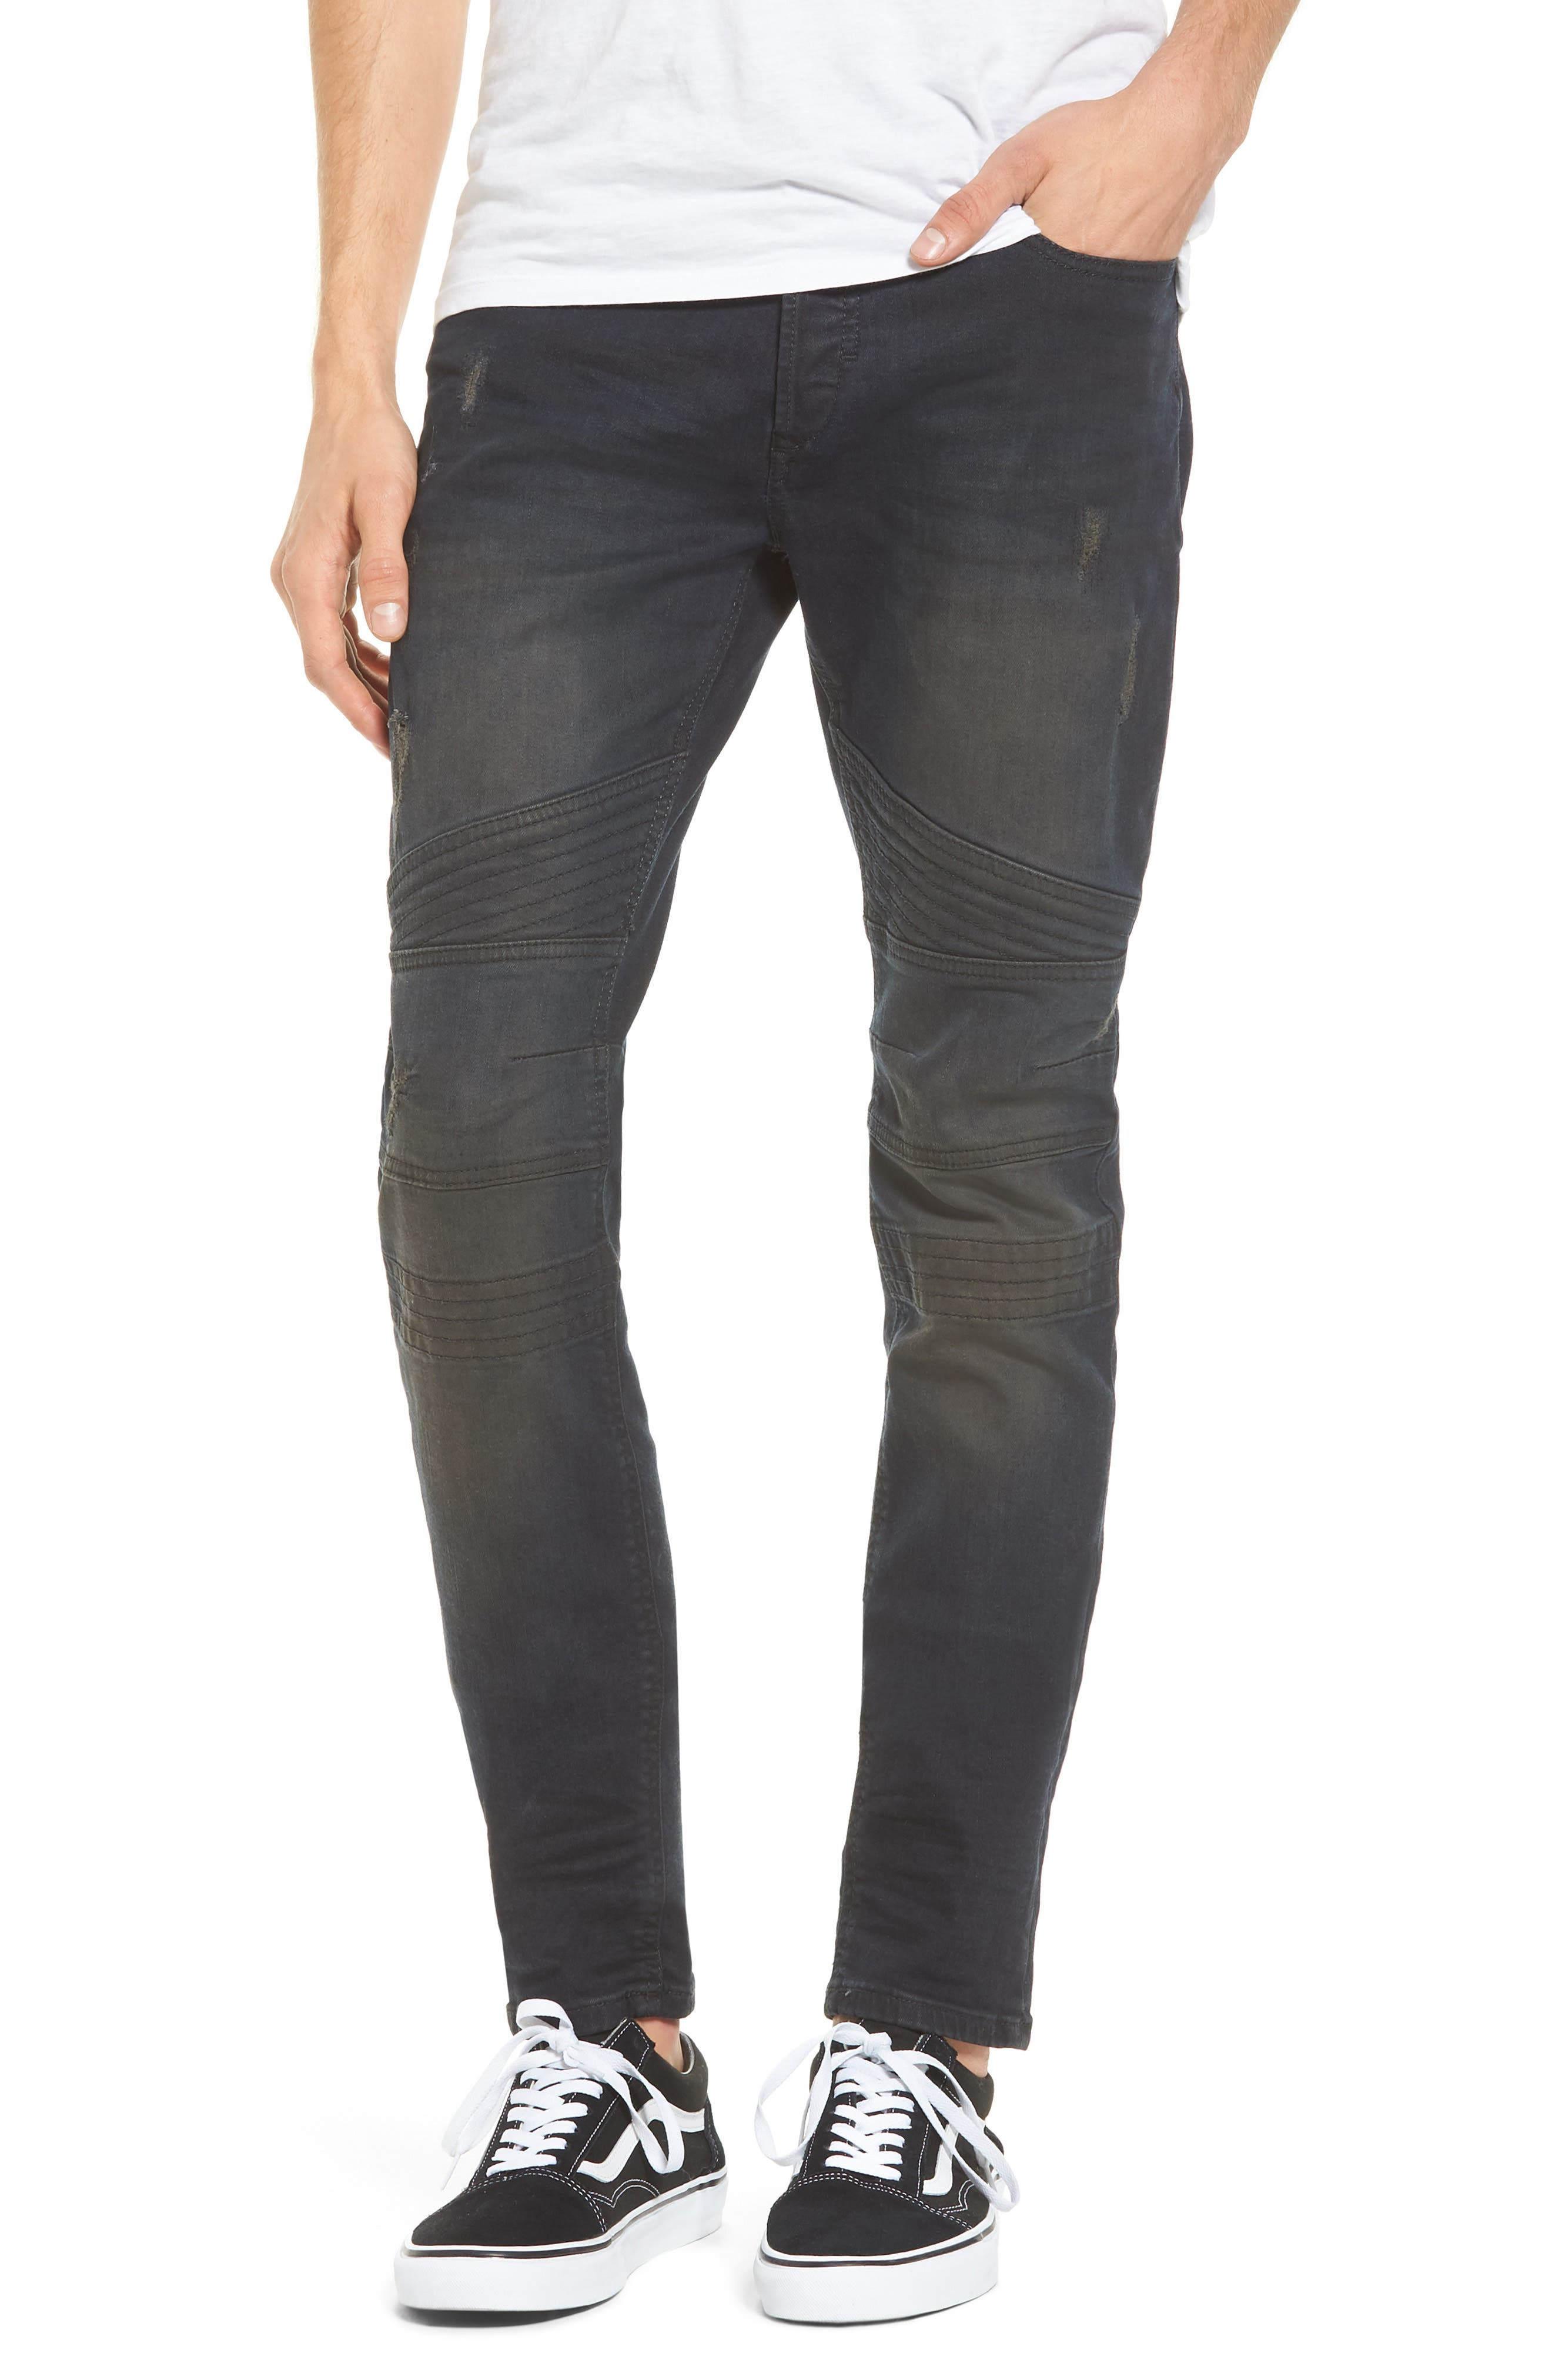 Fourk Skinny Fit Jeans,                         Main,                         color,